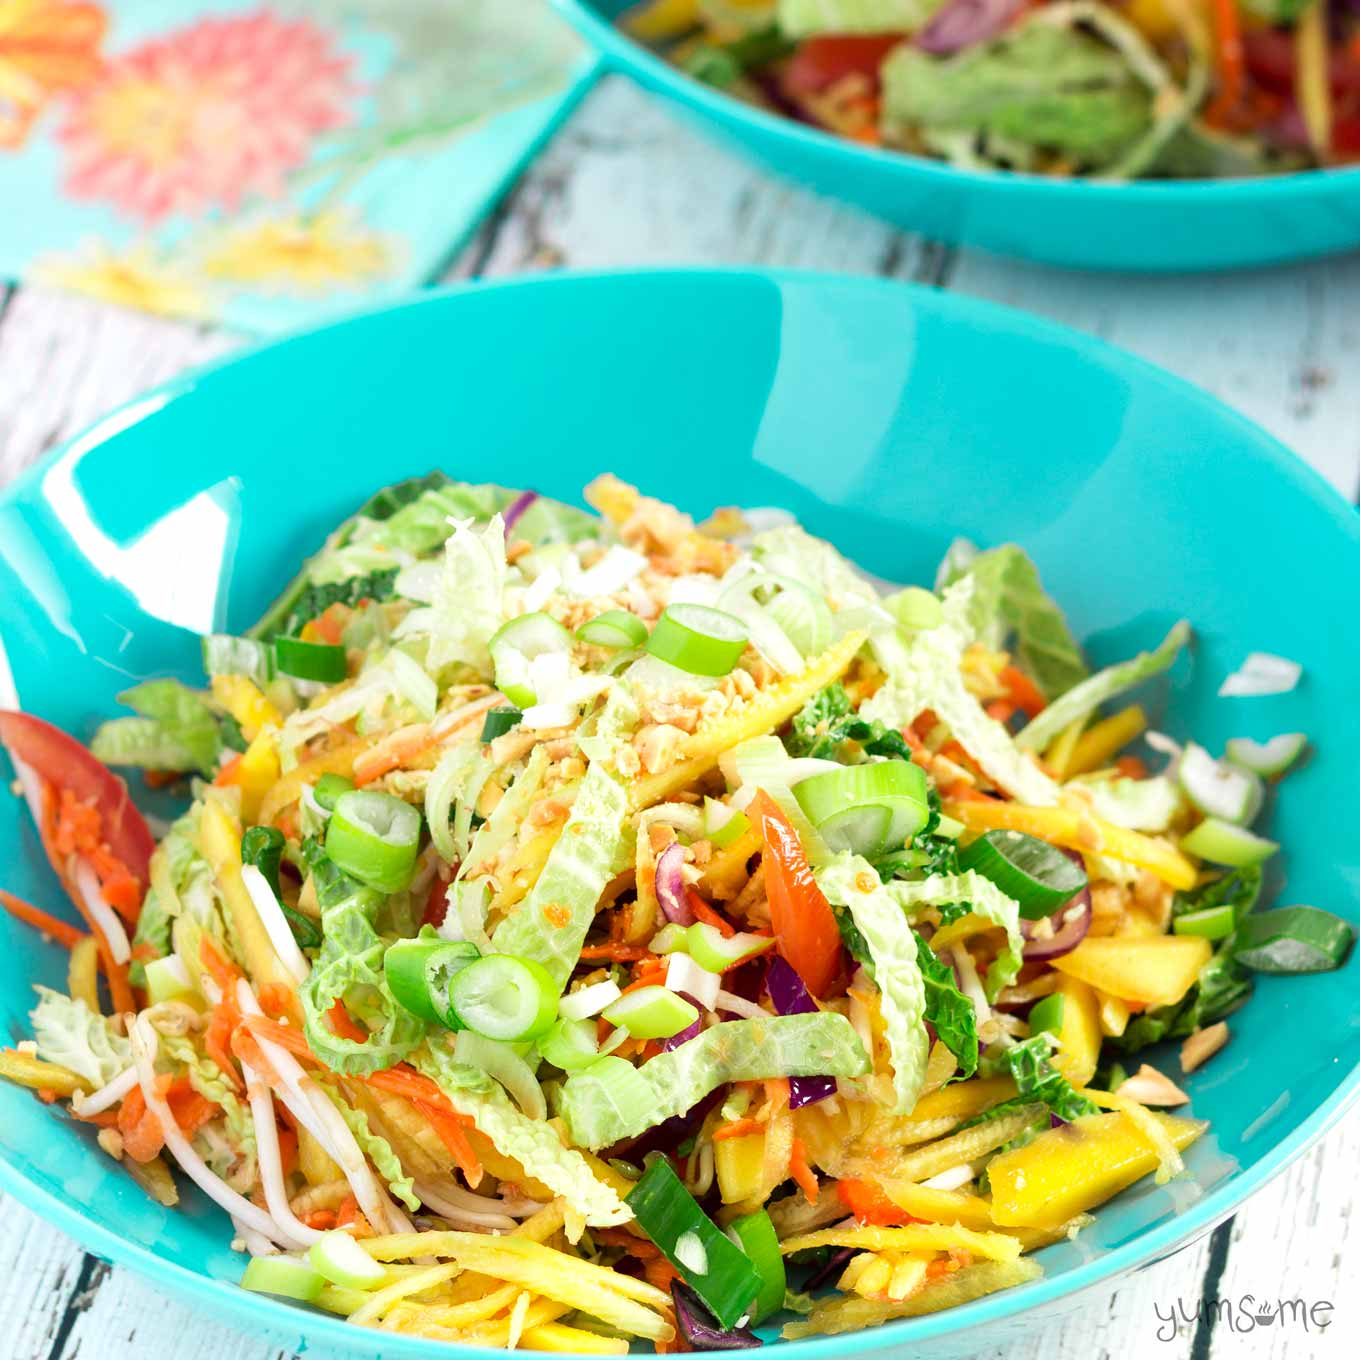 Ready in 20 mins, vegan som tam is a simple, delicious Thai salad made with crunchy vegetables dressed in a fresh and zingy hot, sour, salty, sweet sauce.   yumsome.com